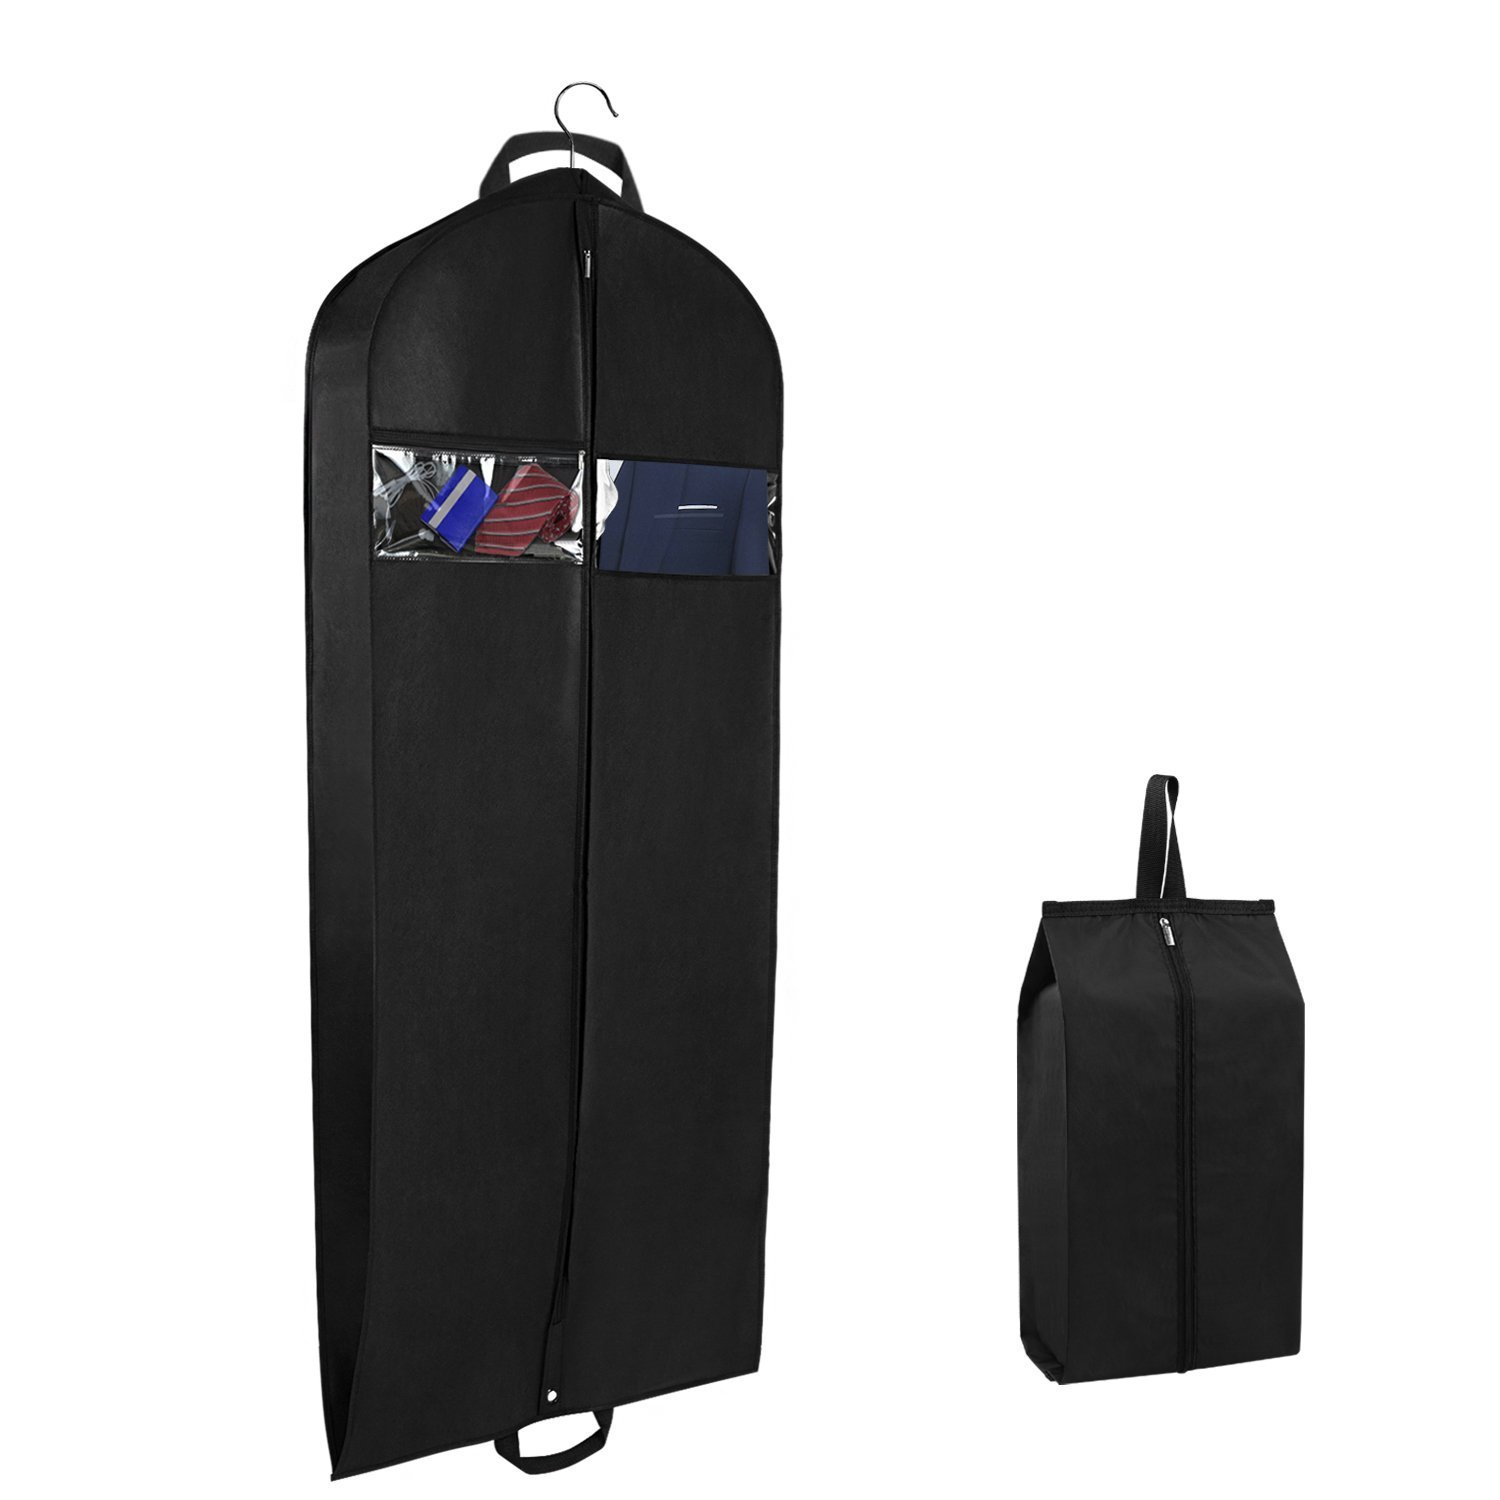 Zilink Garment Bags Suit Bags for Travel 60''x24''x5.9'' Gusseted with Zipper Pockets and Bonus Bag